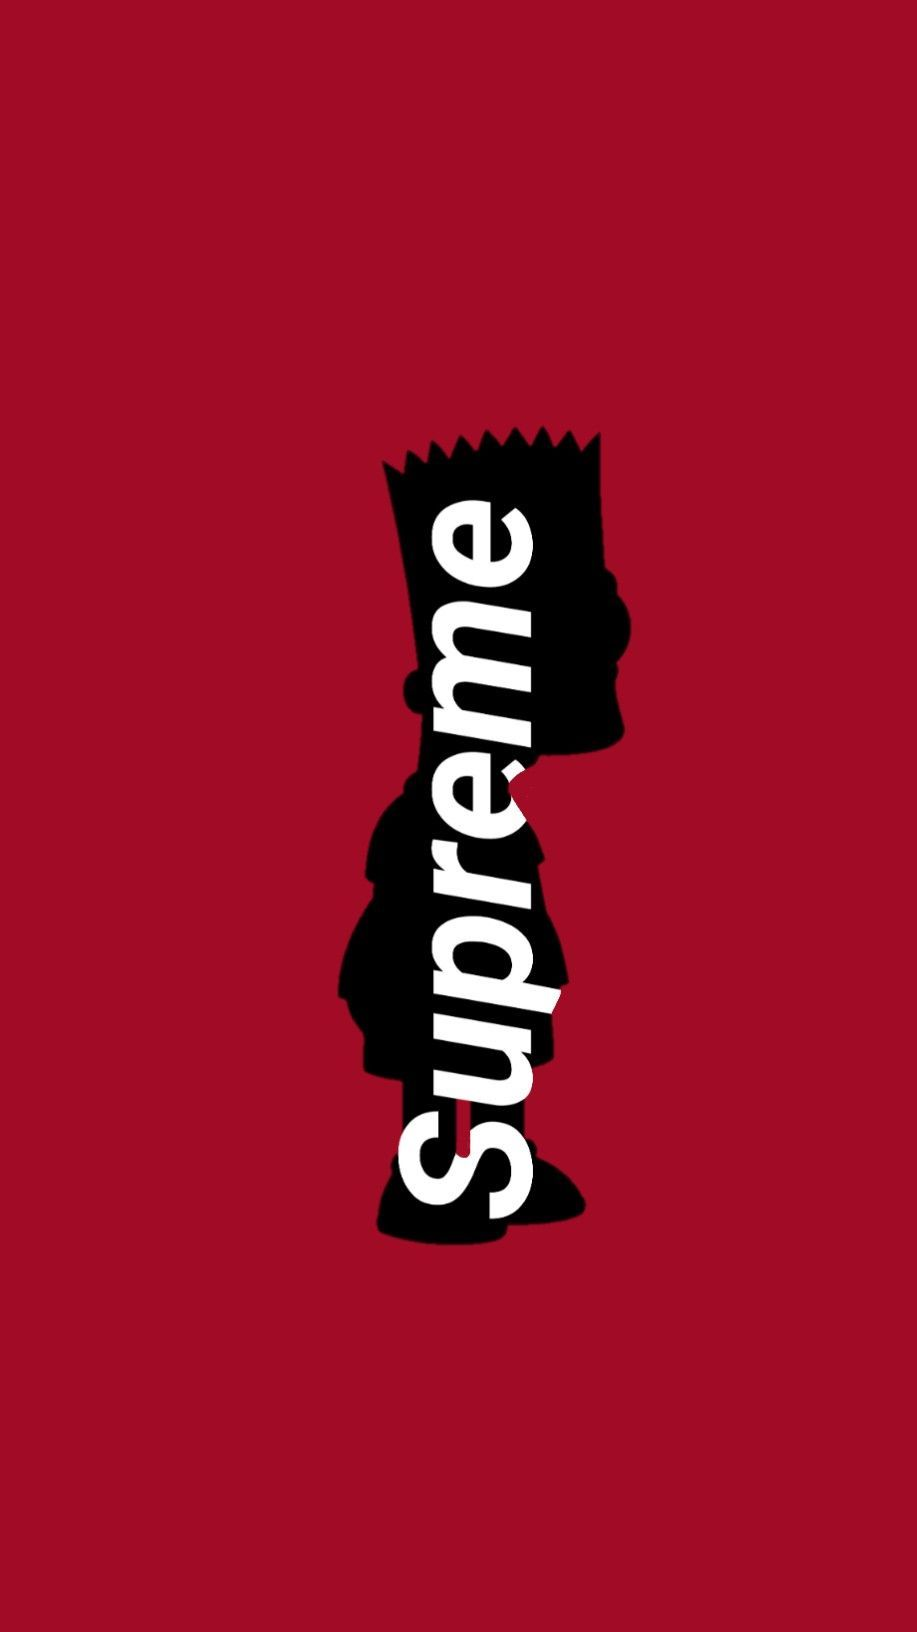 Supreme Gucci Wallpapers Wallpapersafari Supreme Iphone Wallpaper Supreme Wallpaper Supreme Wallpaper Hd